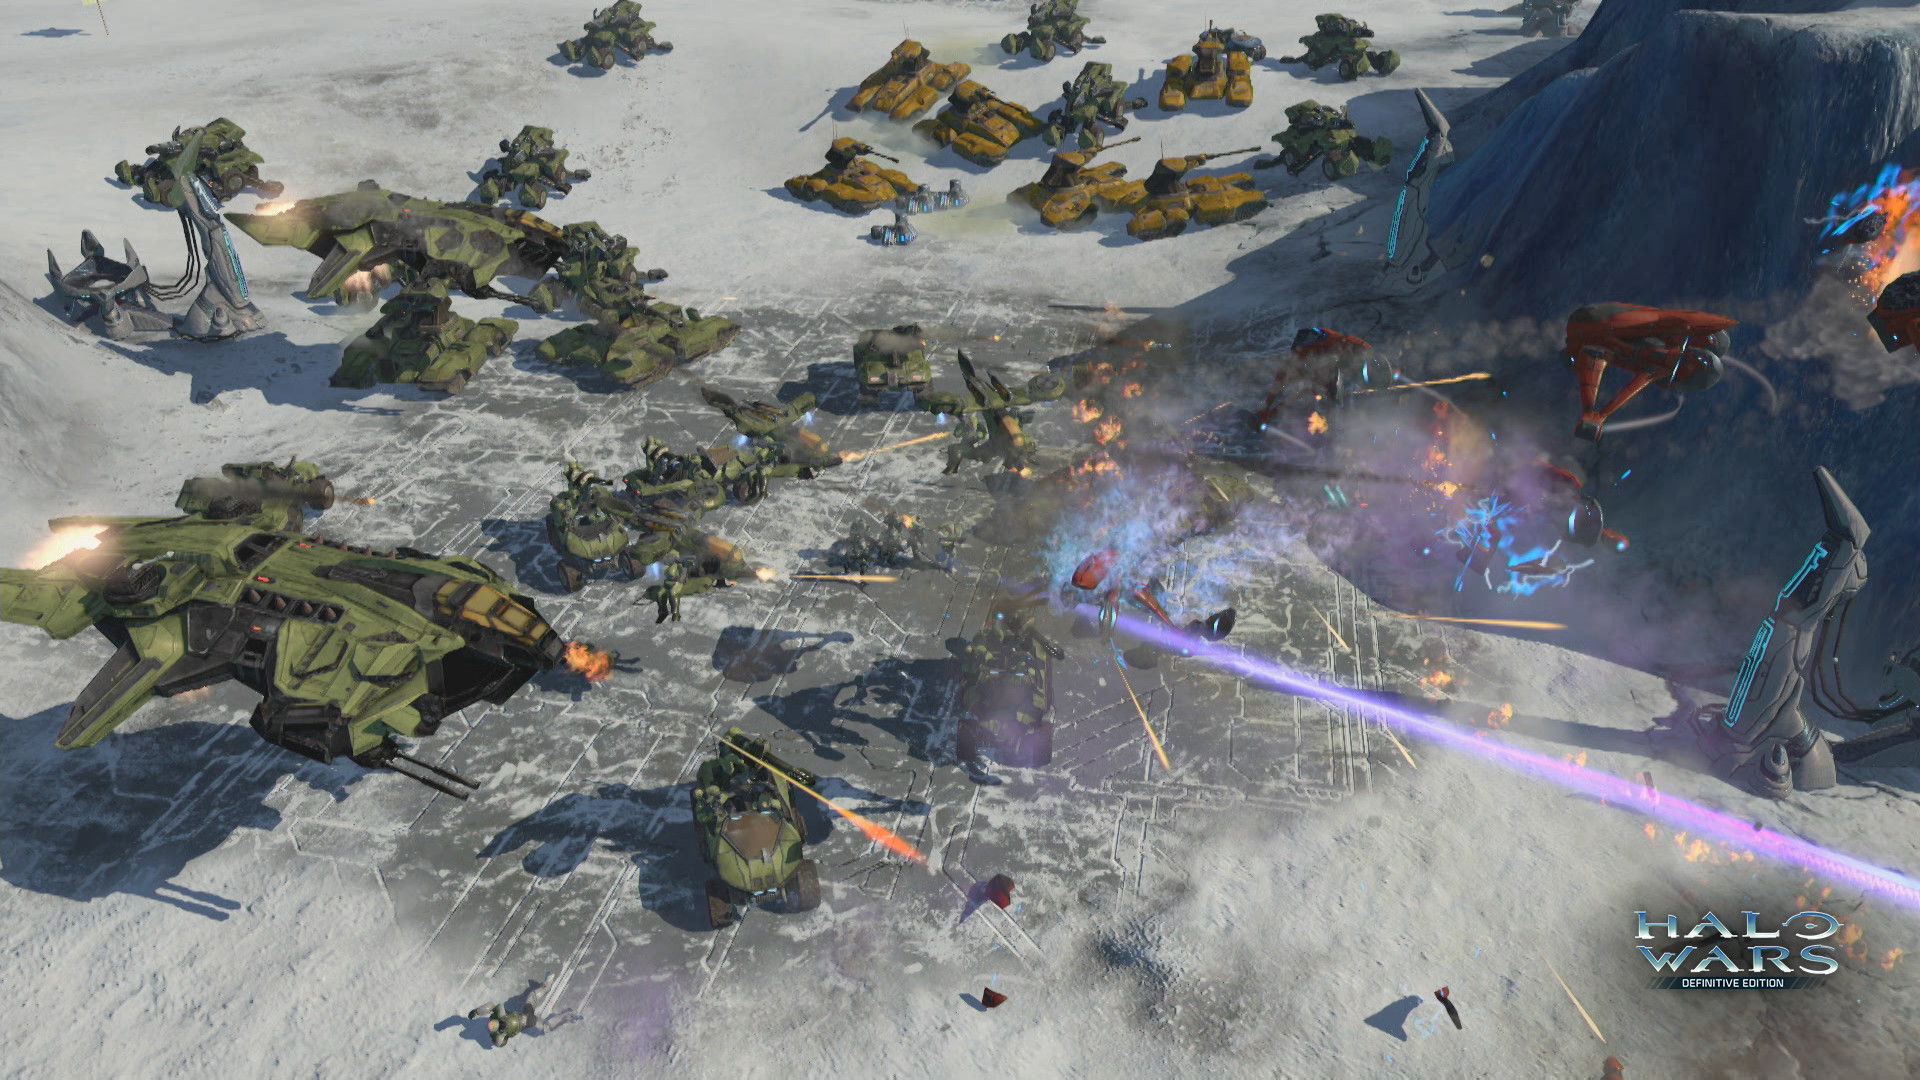 halo 2 pc free download with multiplayer